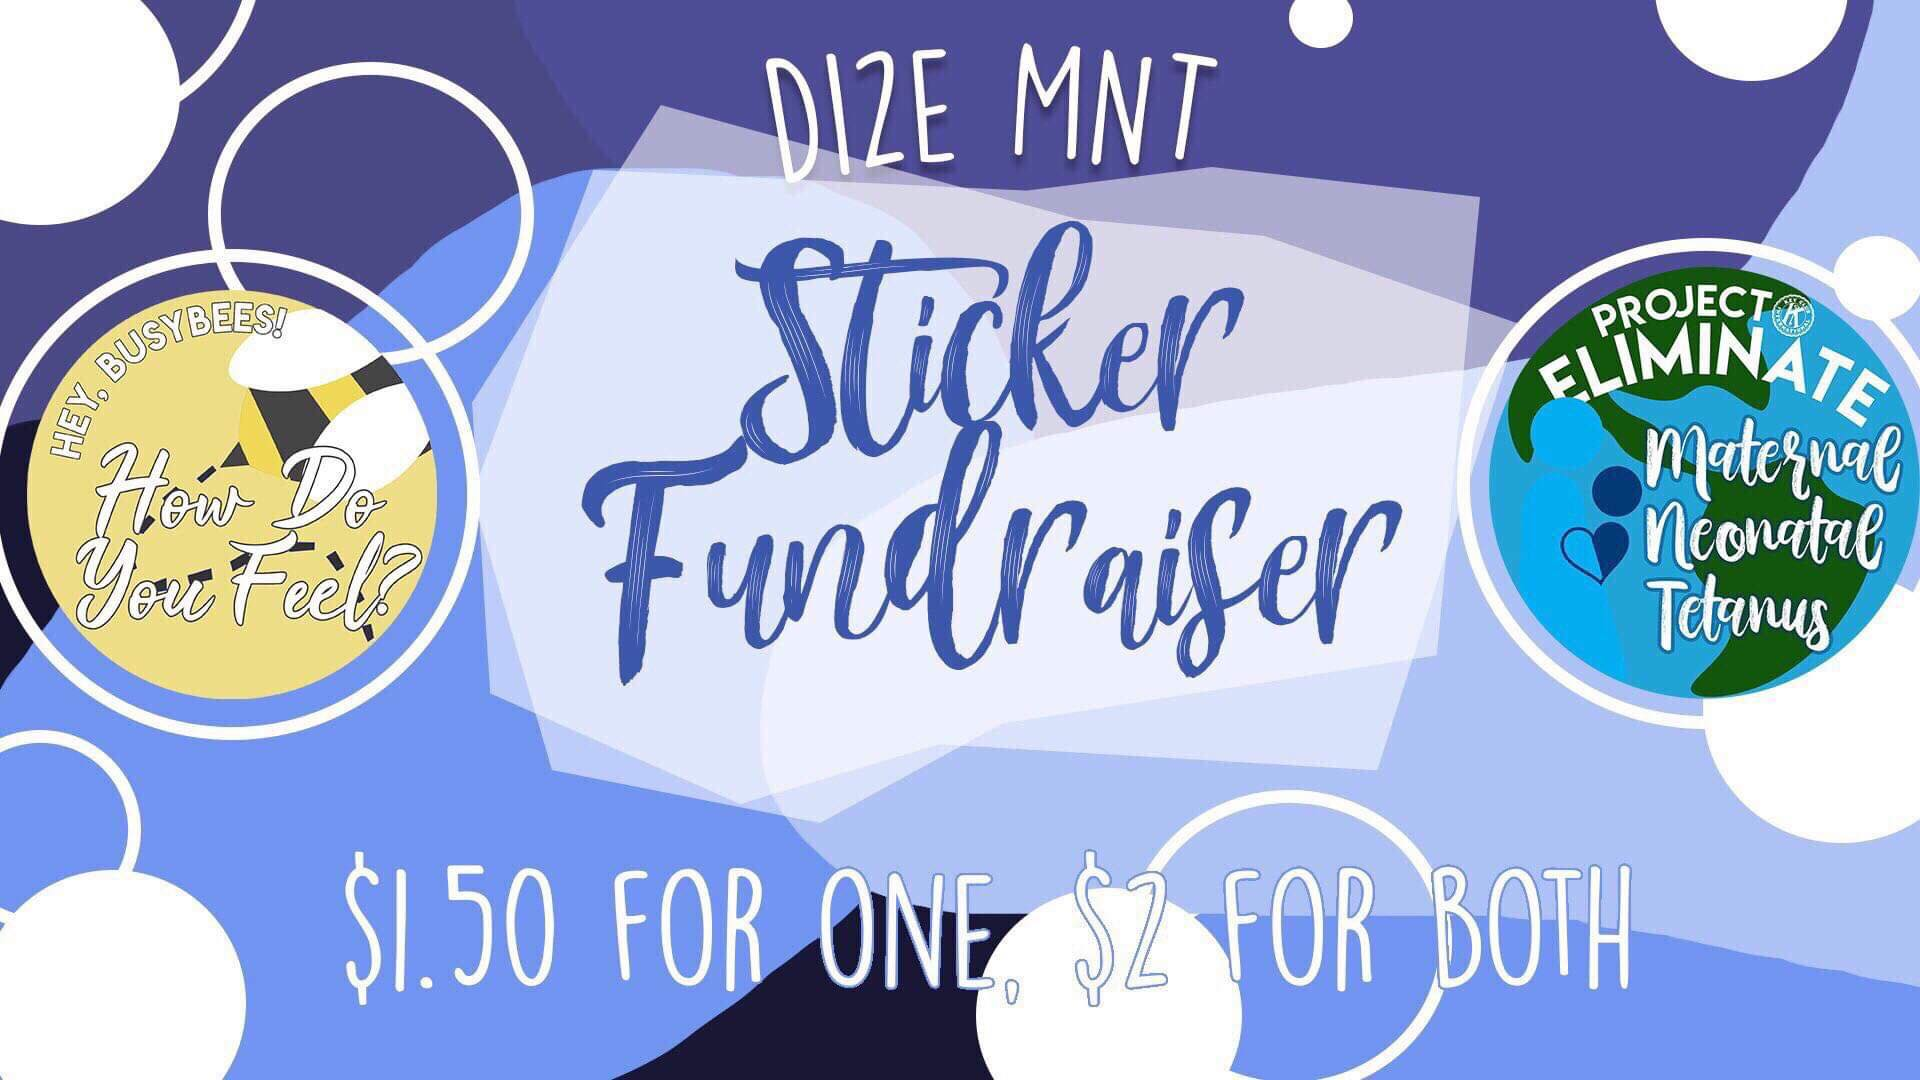 MNT STICKERS - SUPPORT MNT!Purchase MNT stickers for the price of $1.50 for 1 or $2 for both! You can get them when you come to our general meetings (held every Tuesday in A-Commons) or you can contact Andrea Vu or Sylvia So.